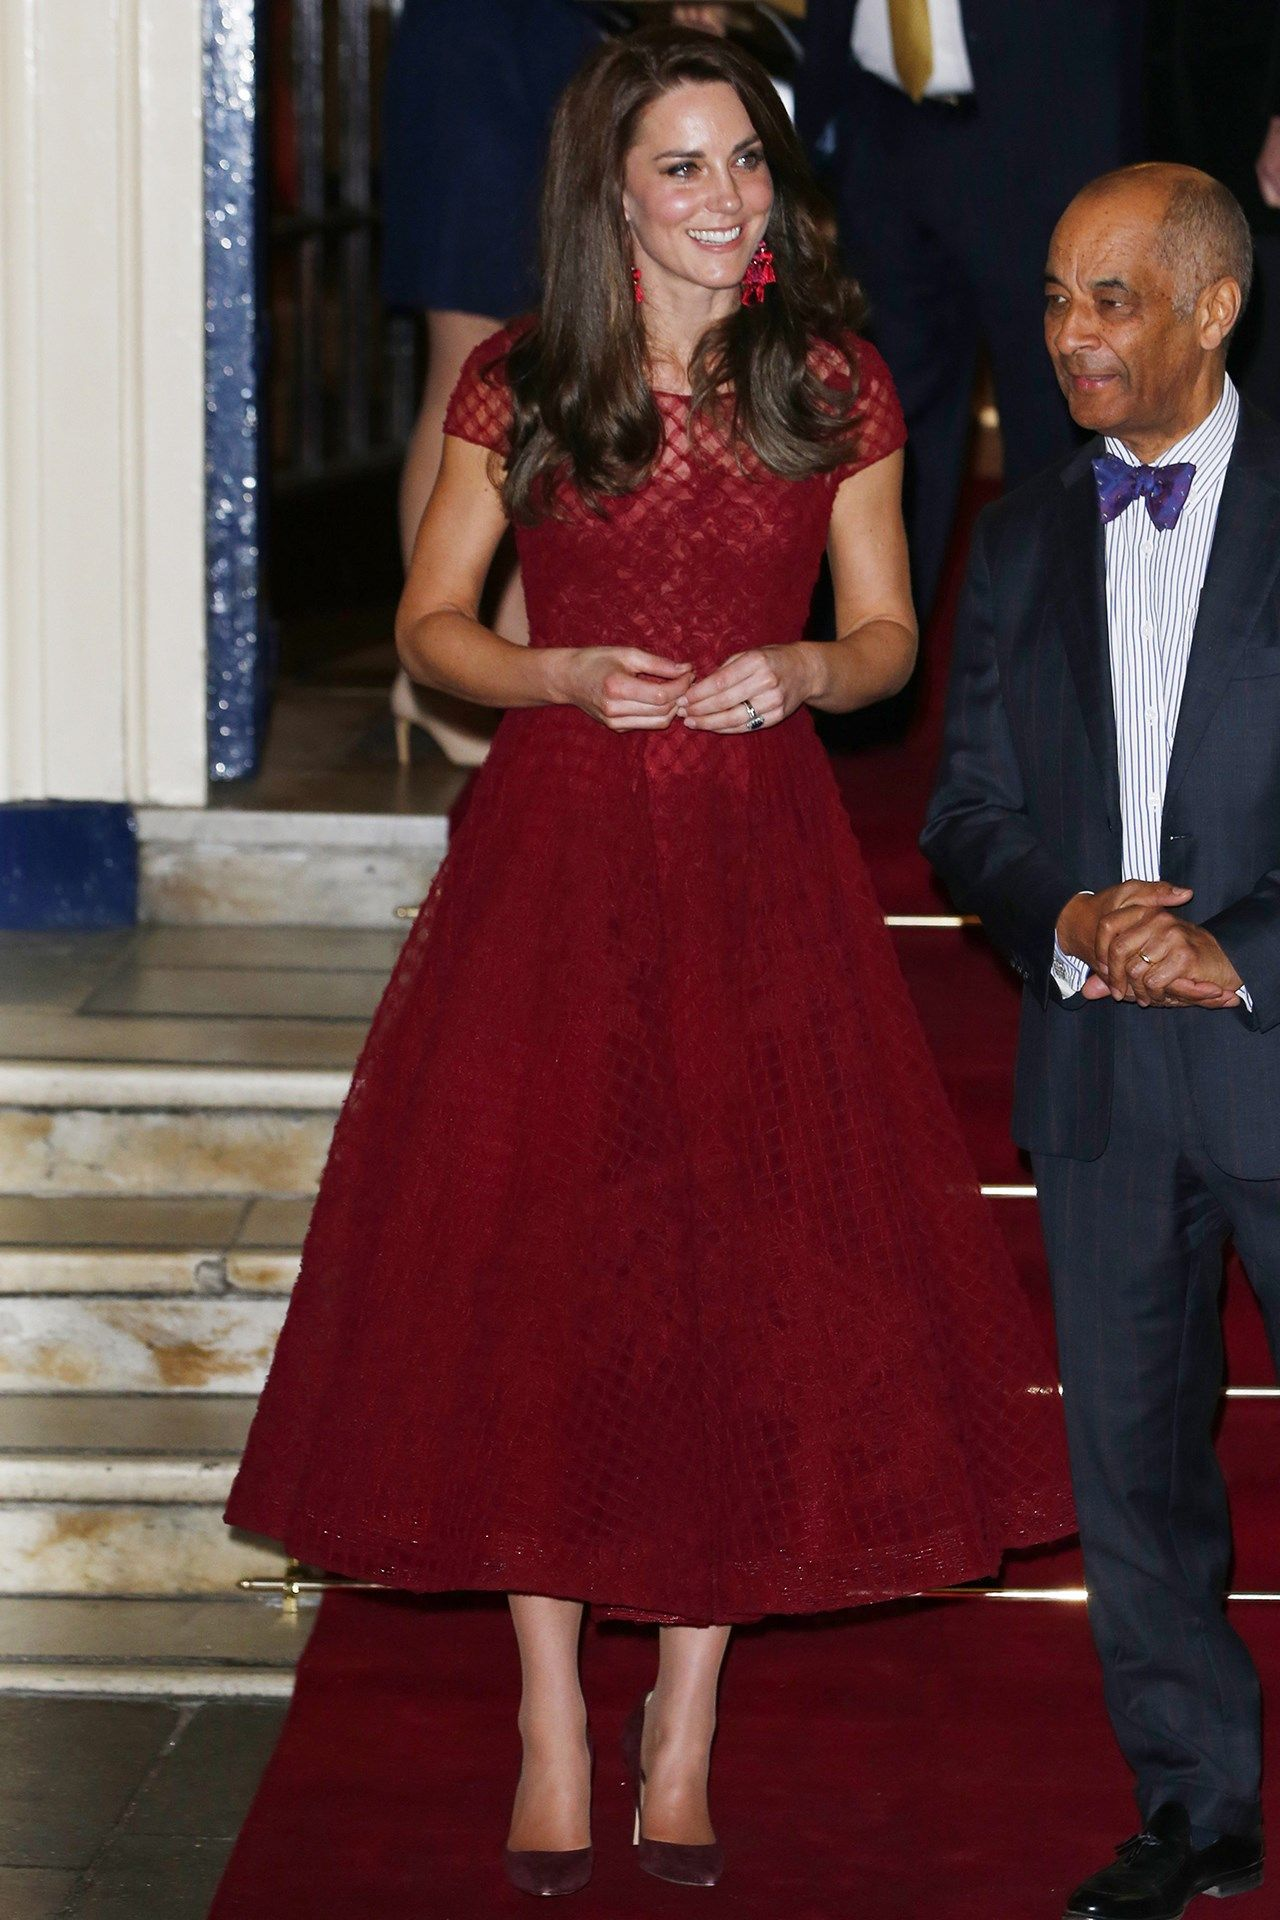 1c8a940e The Duchess of Cambridge wearing a red Marchesa dress to the opening night  of 42nd Street at the Theatre Royal Drury Lane